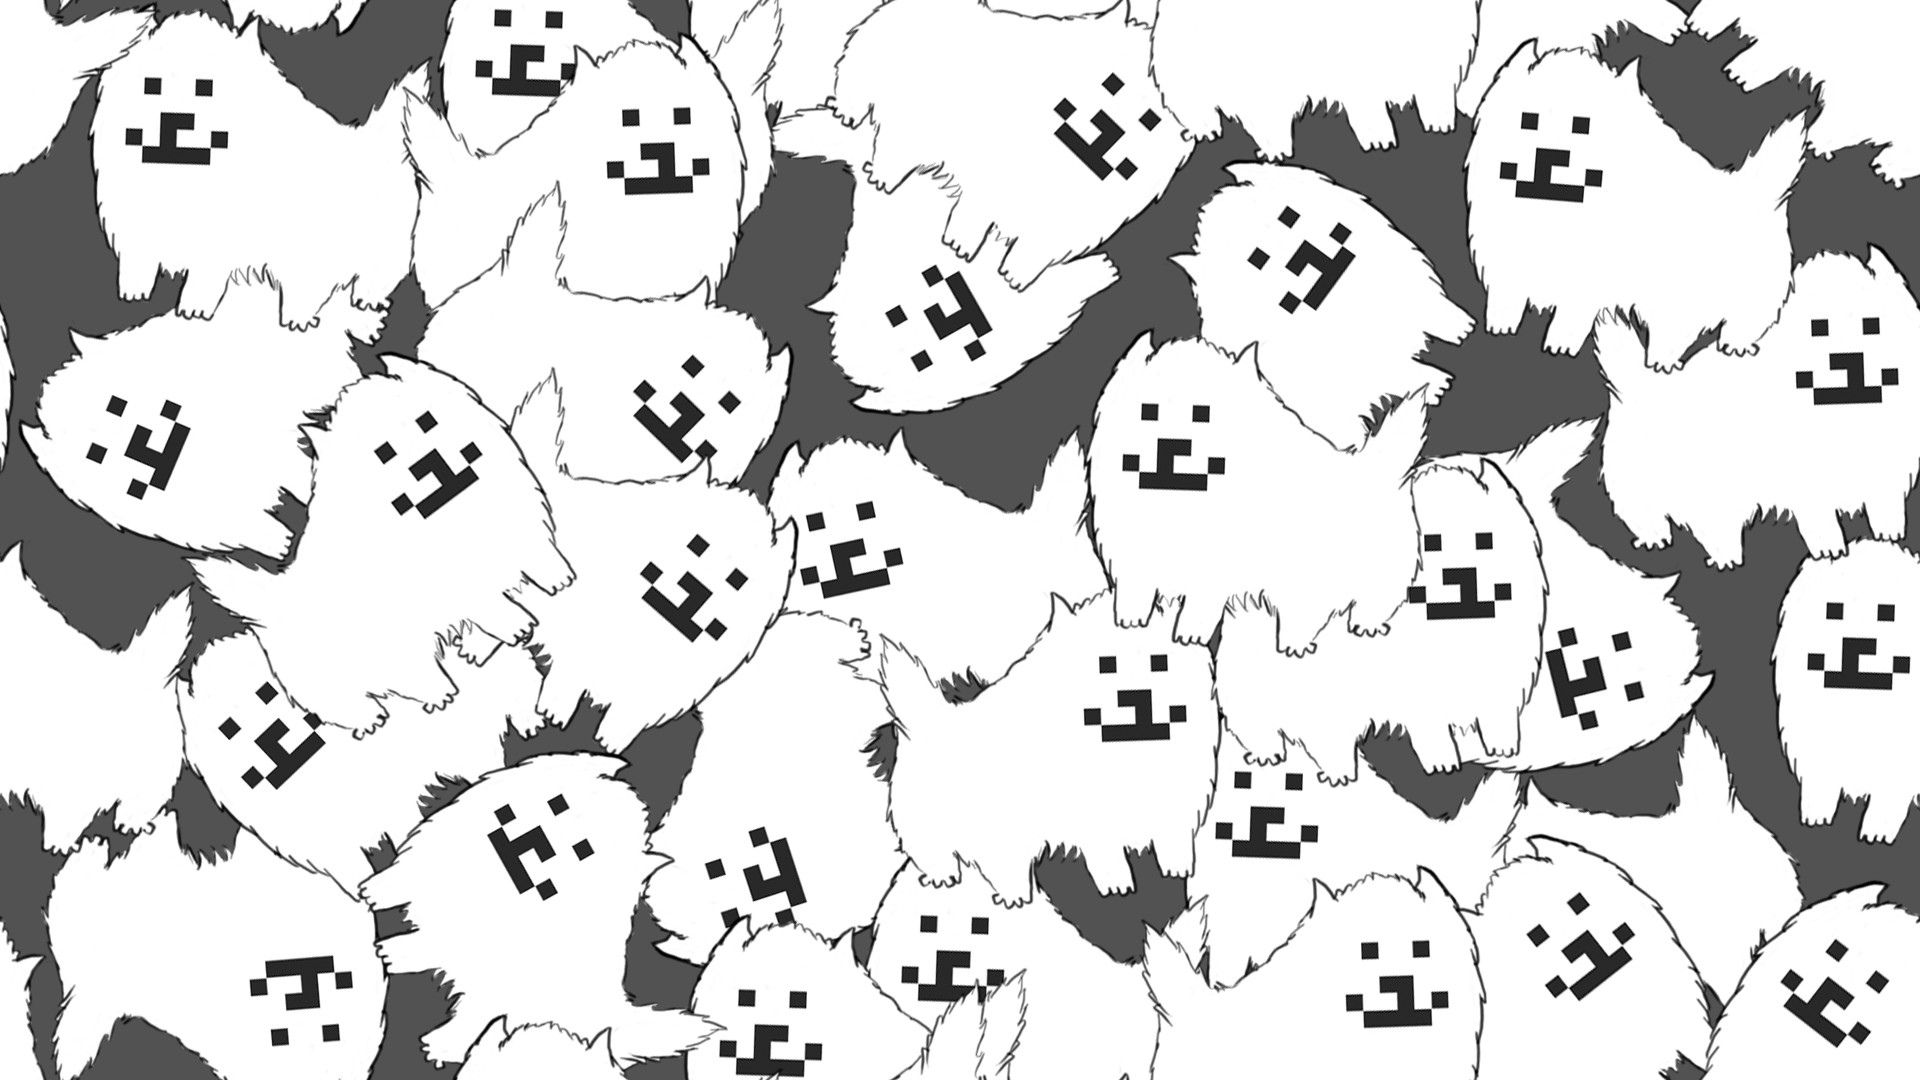 1920x1080 Undertale Wallpaper - Similar Results Search Results Undertale .